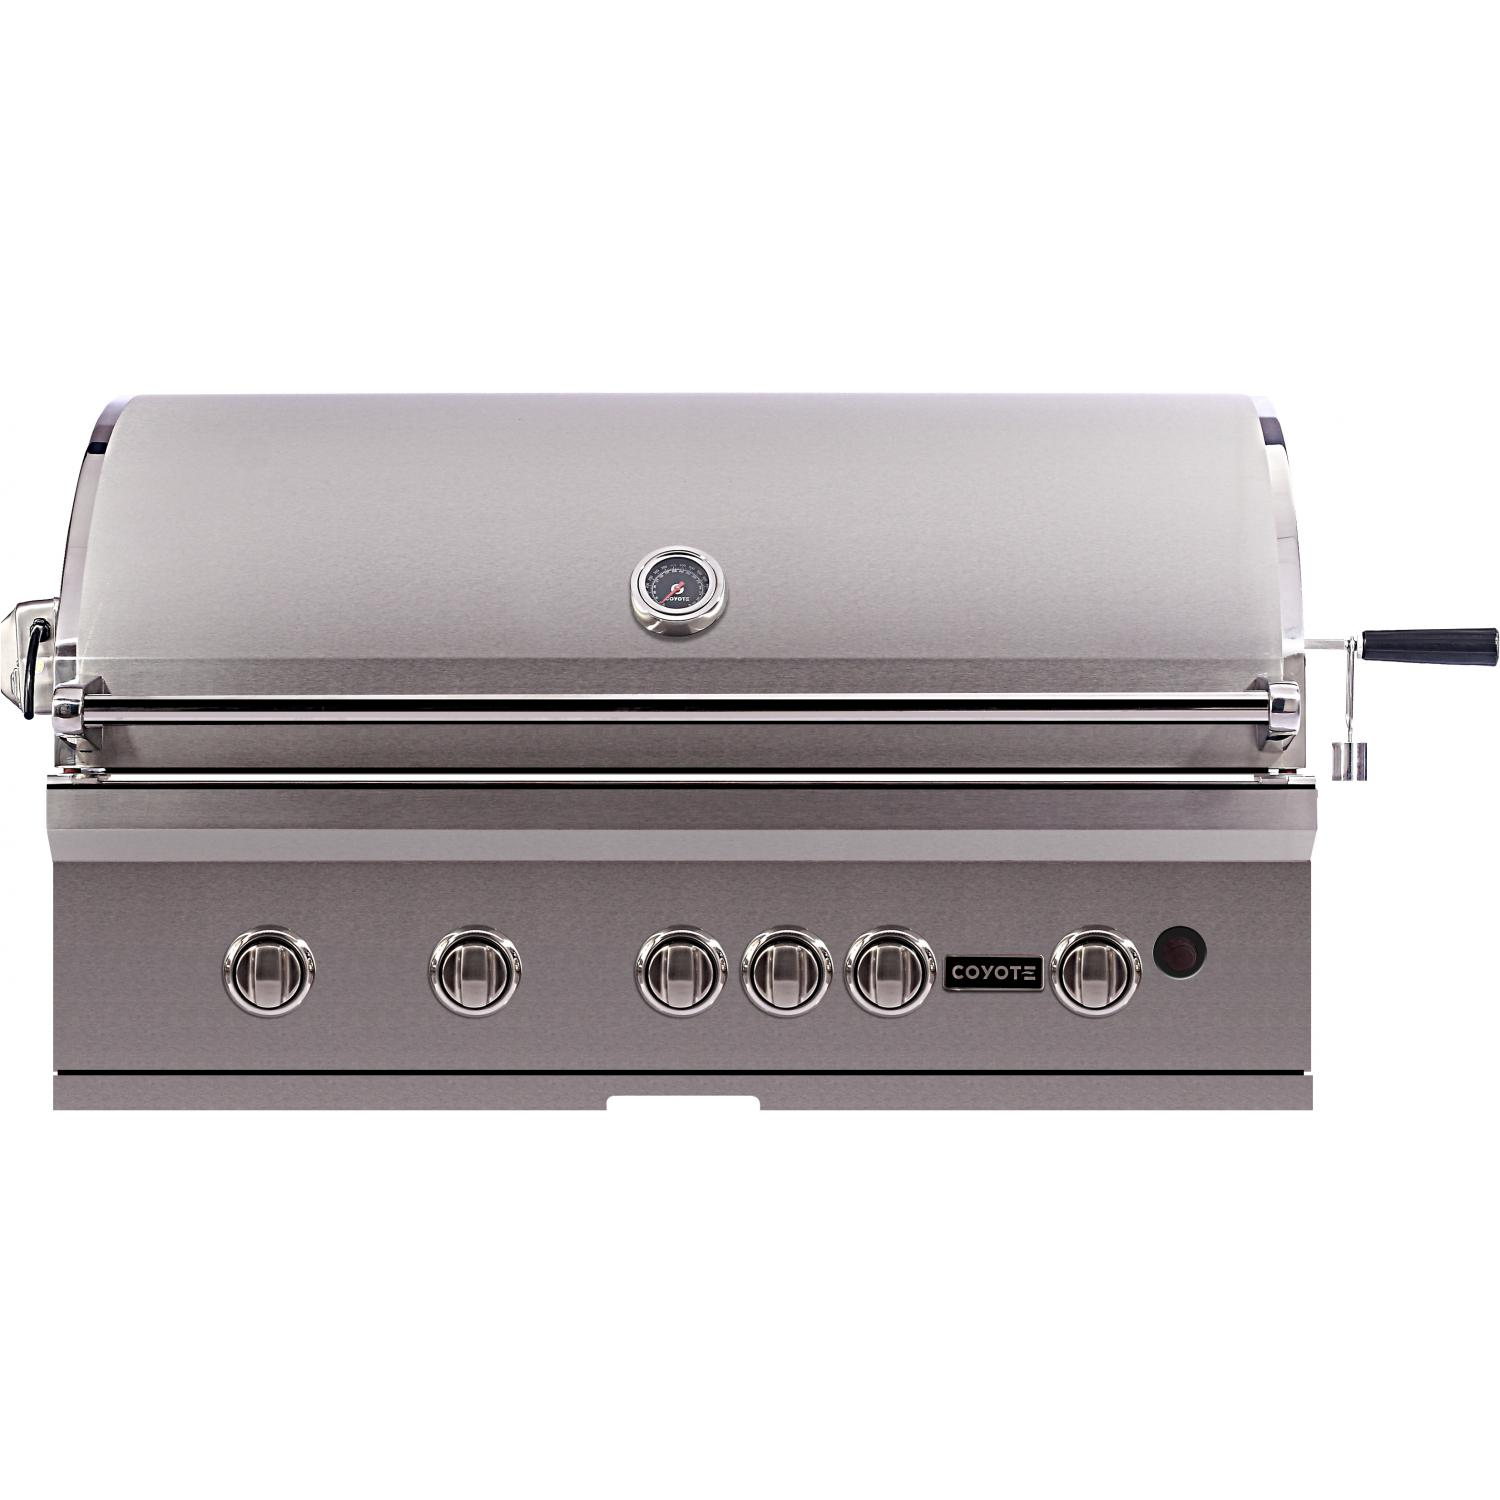 Coyote S-series 42-inch Built-in Natural Gas Grill at Sears.com